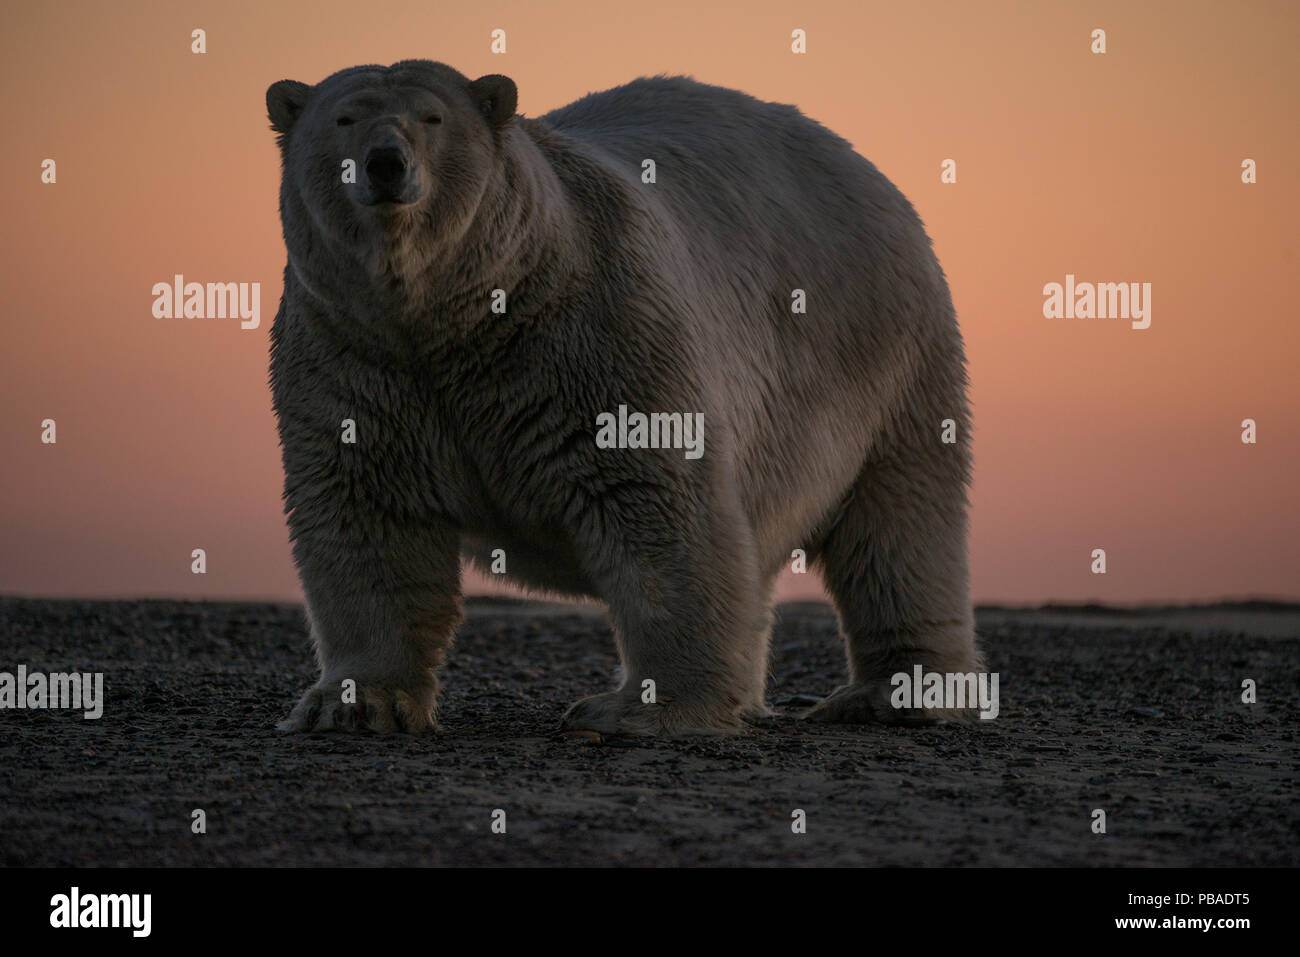 Polar bear (Ursus maritimus) portrait against sky at sunset, Bernard Spit, off the 1002 Area, Arctic National Wildlife Refuge, North Slope, Alaska, USA, September. Vulnerable species. - Stock Image